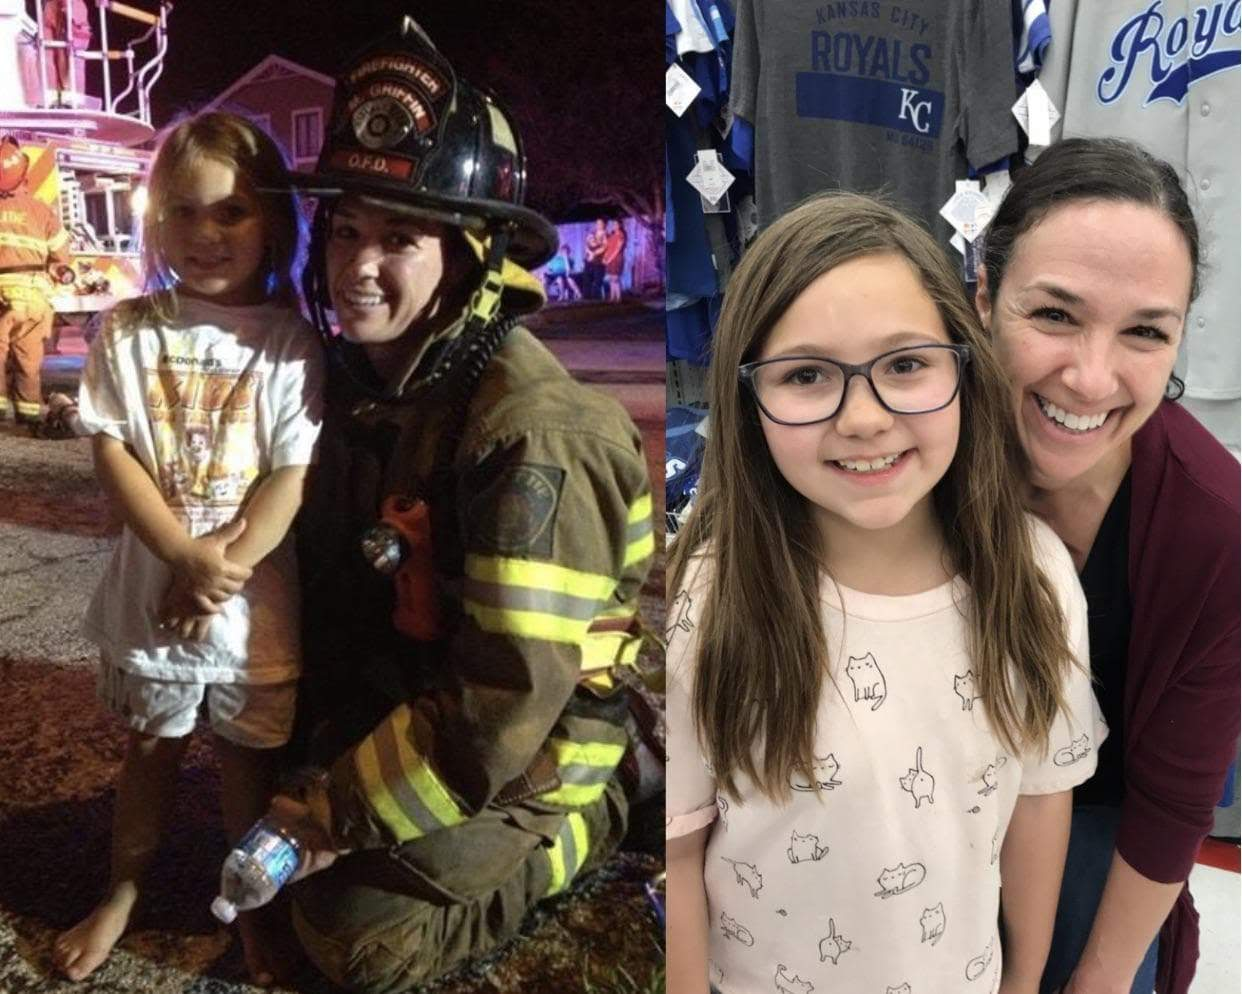 Today's Photo - March 28, 2019 : House fire 6 years ago .... my kiddo wasn't scared that night bc of this awesome firefighter....my daughter was in awe of her & look who we just ran into tonight!